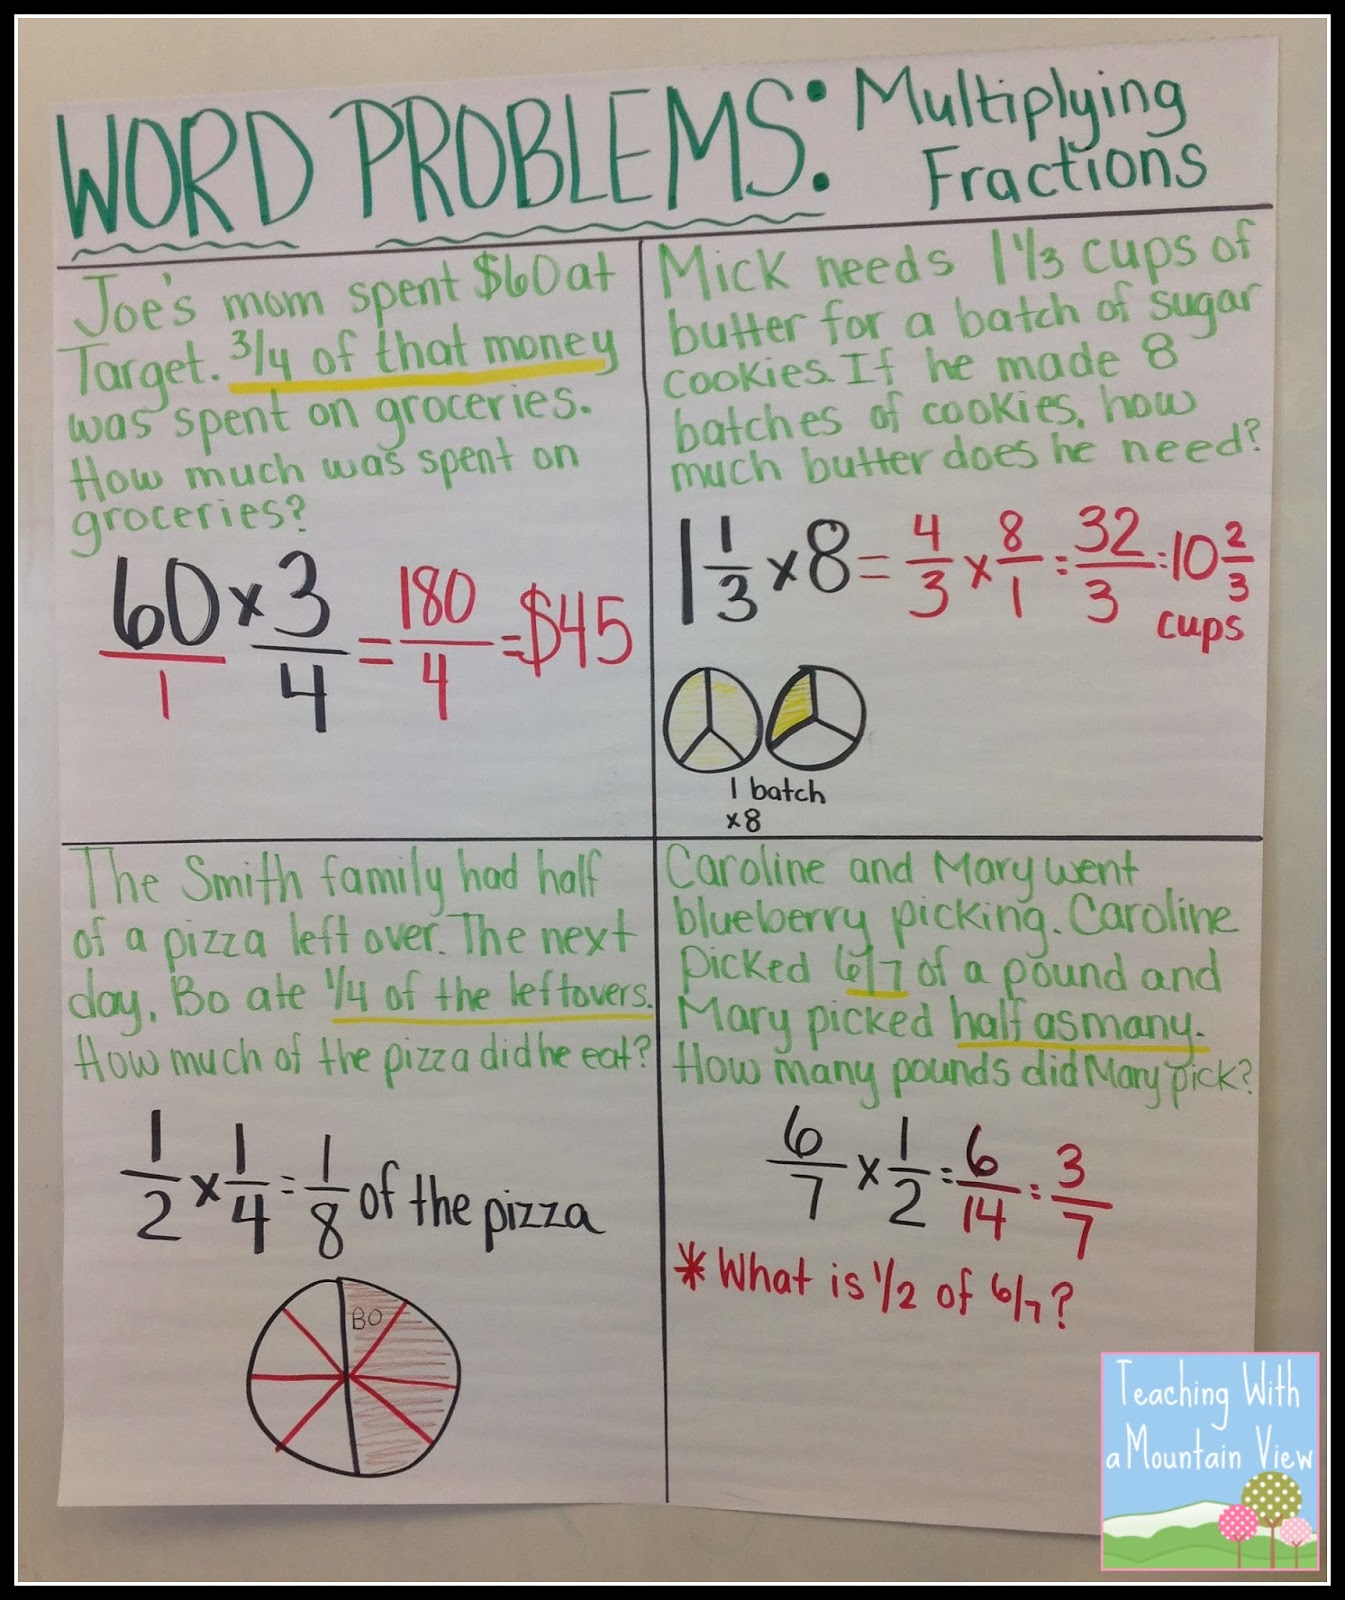 Solving fraction word problems